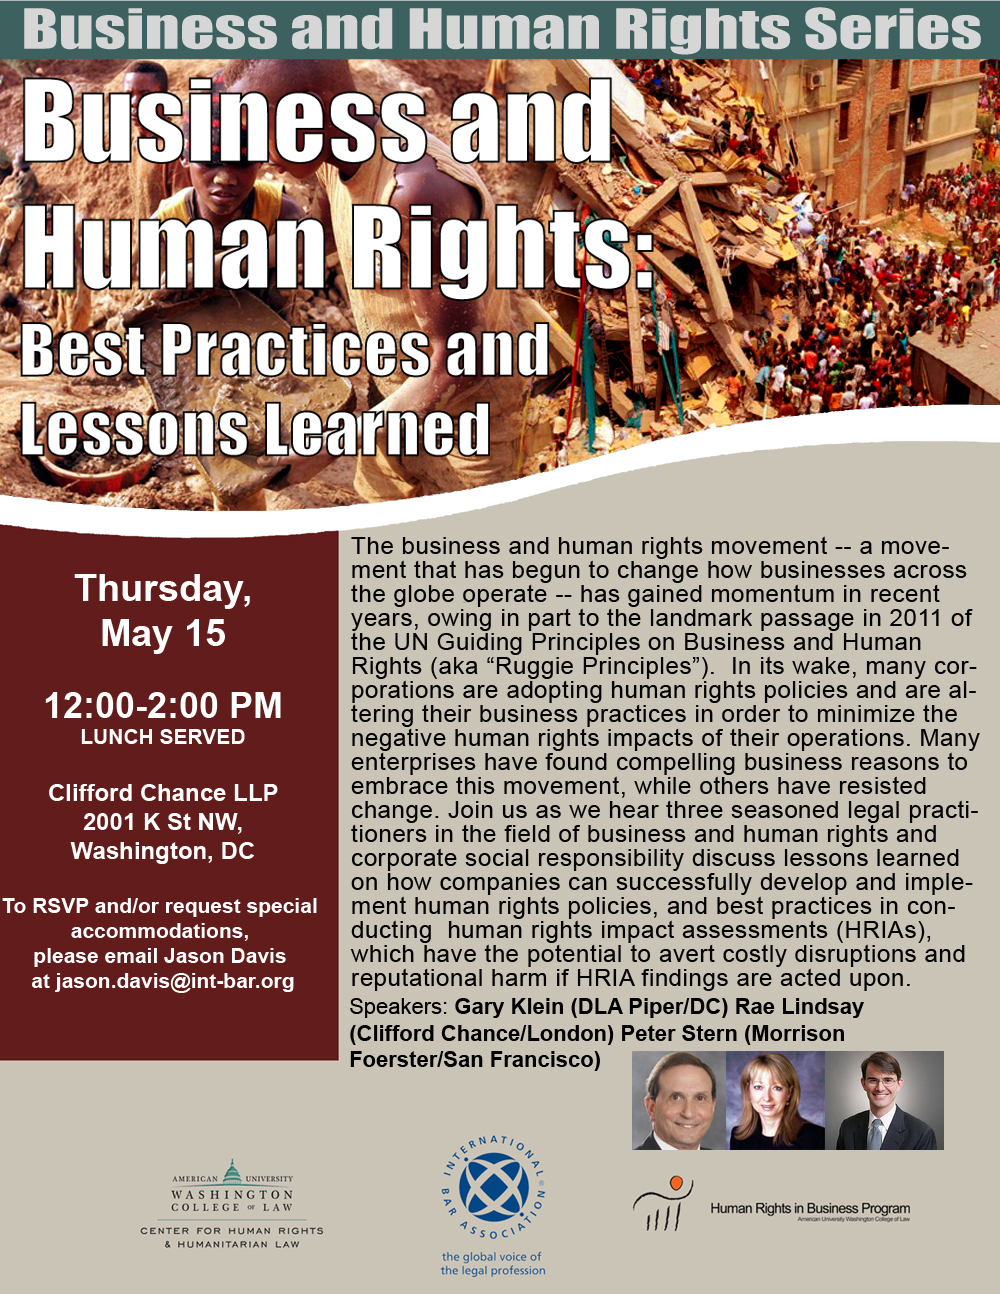 Business and Human Rights: Best Practices and Lessons Learned